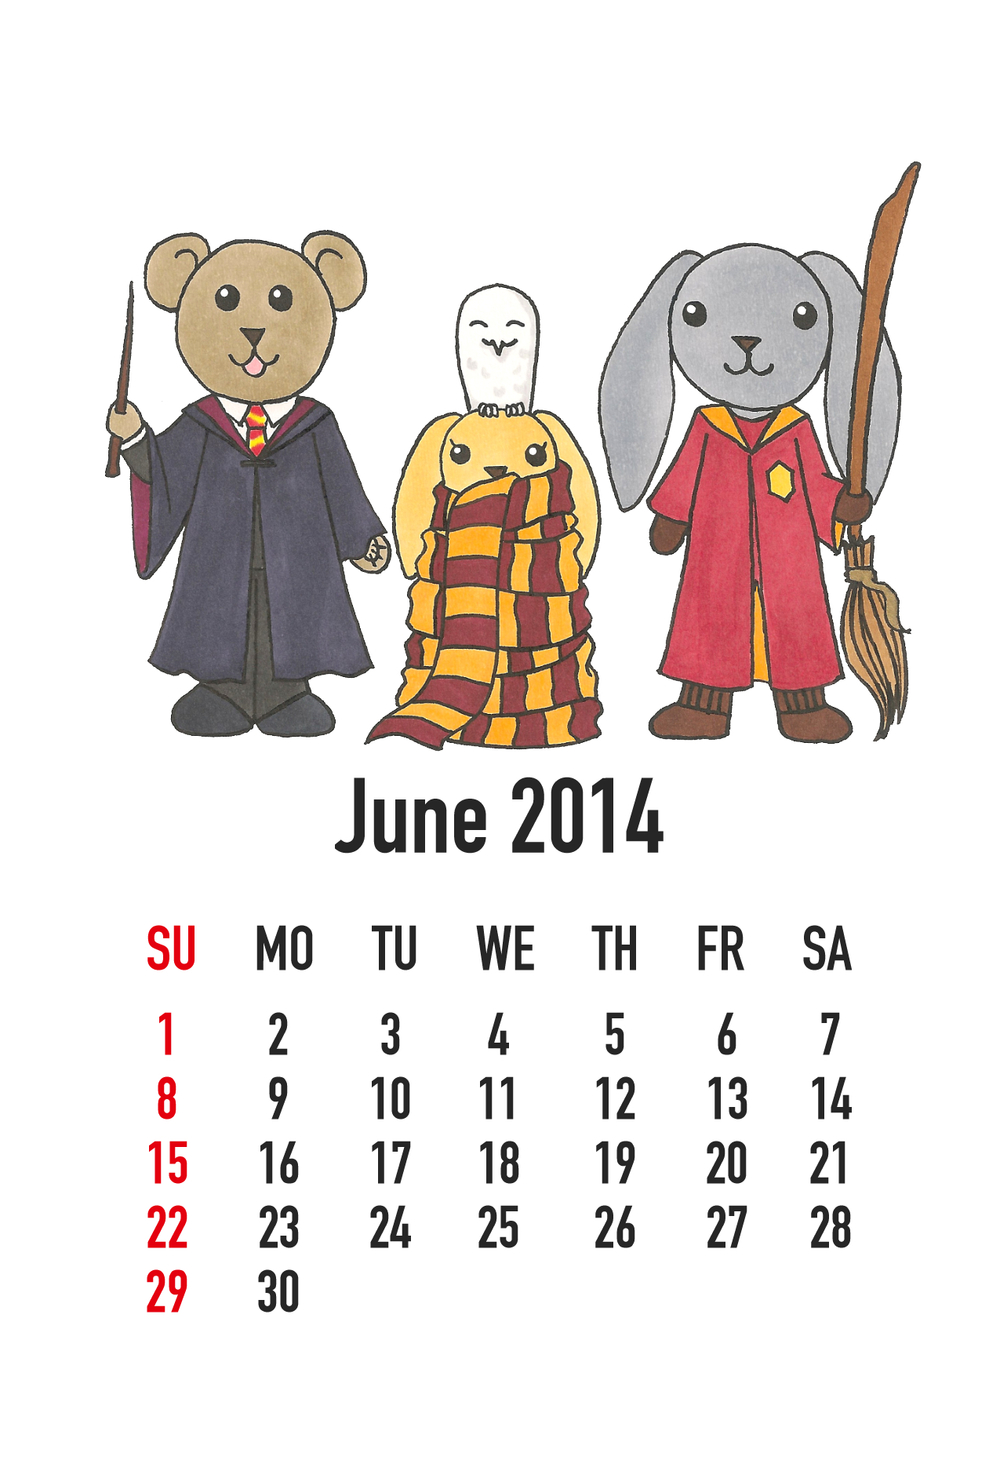 June 2014: Harry Potter